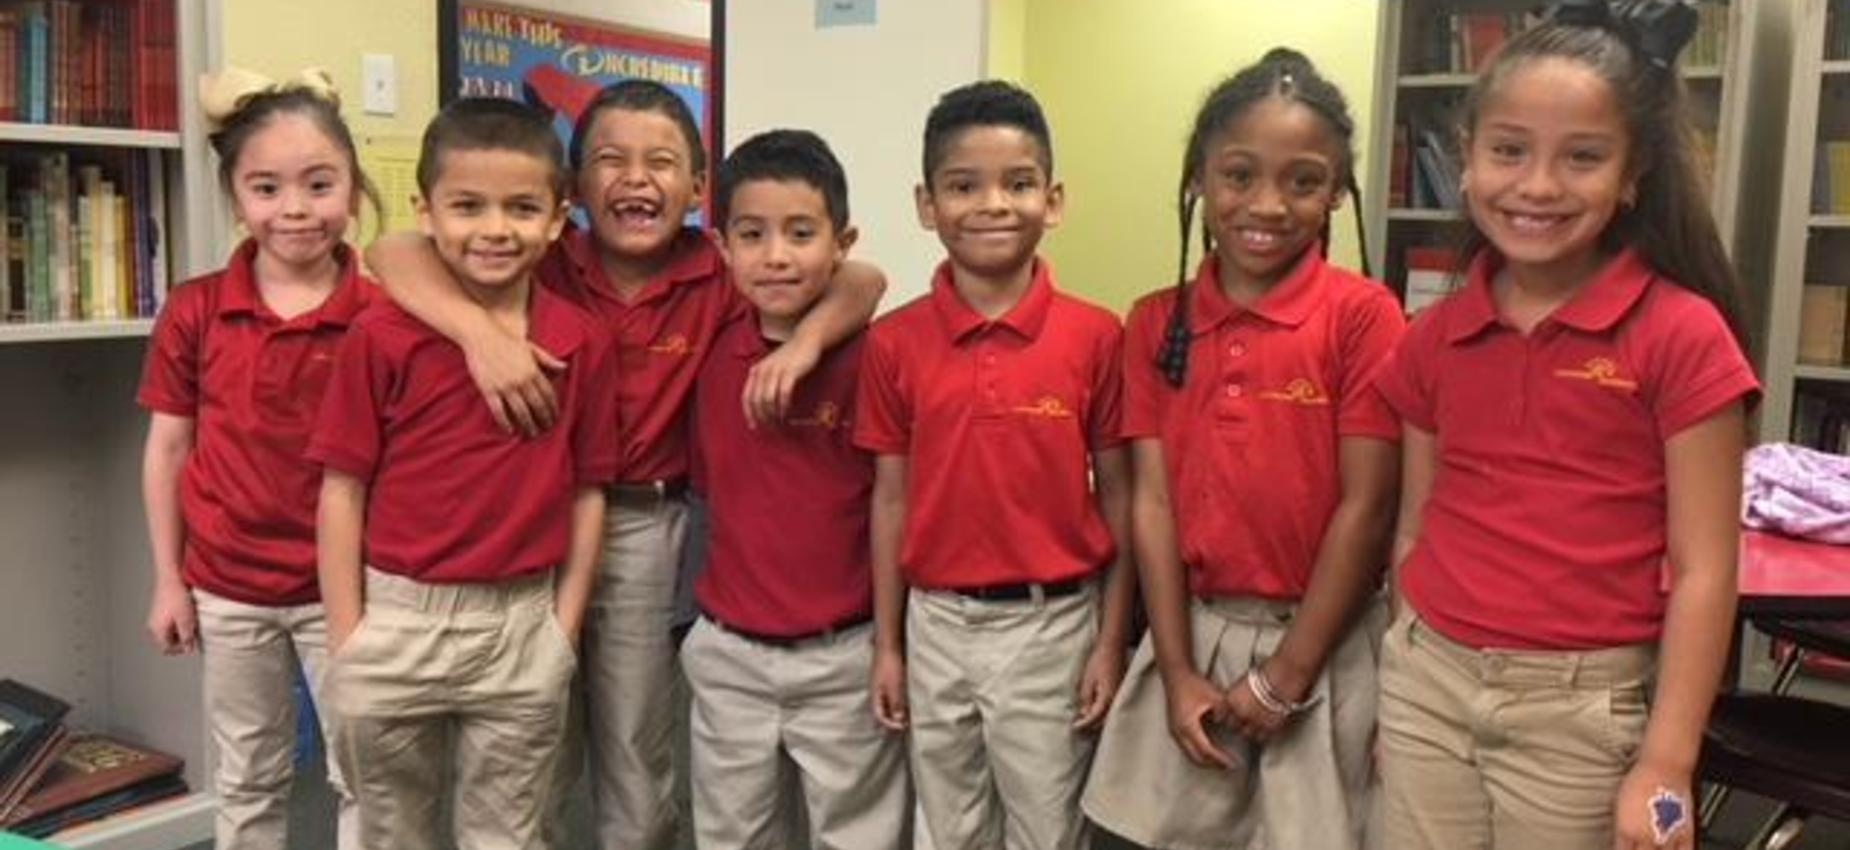 Elementary students in red polo uniform shirts